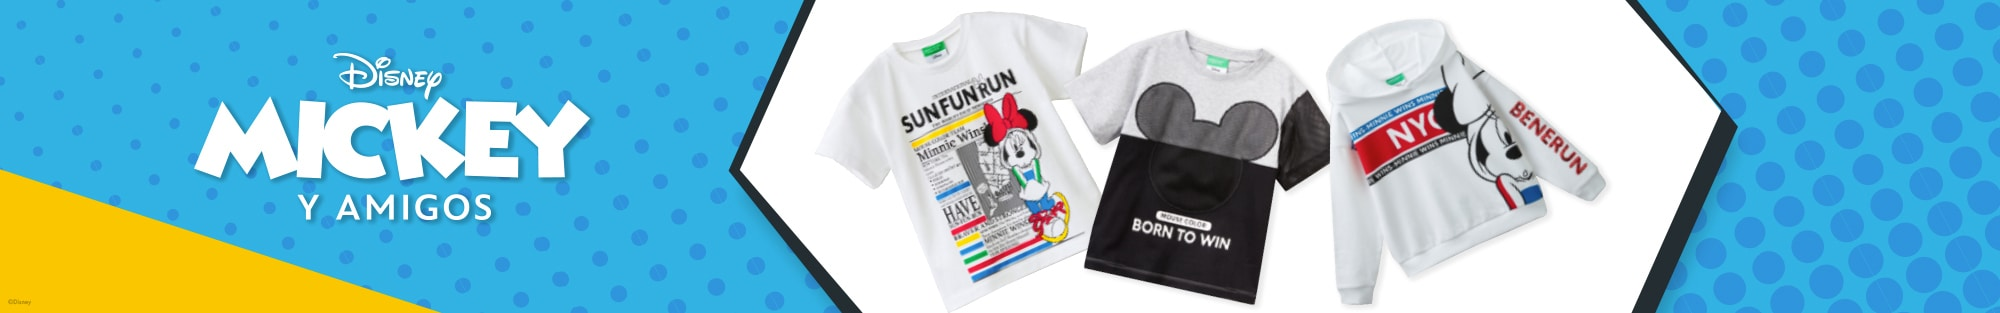 Mid_ShopDisney_Disney_Benetton (Ext)